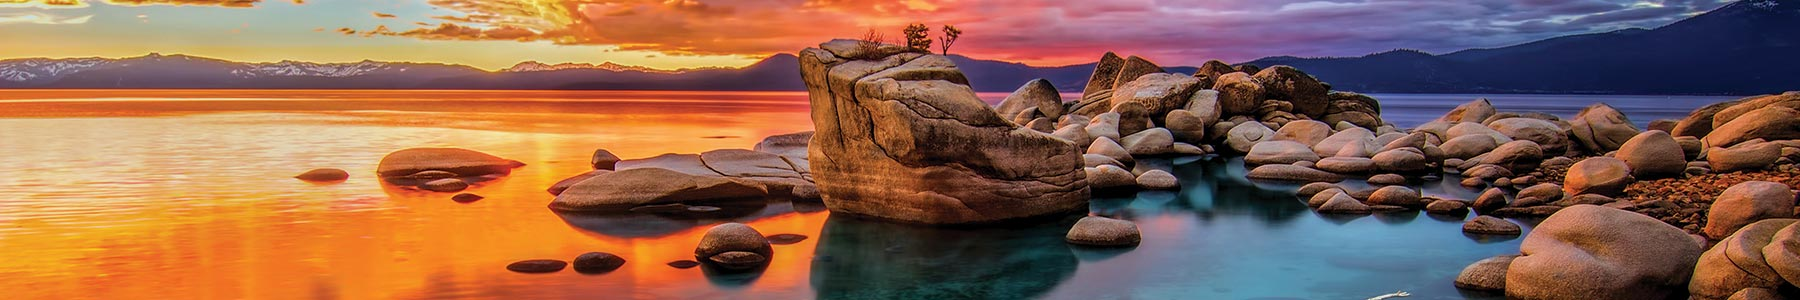 Lake Tahoe scenic photo